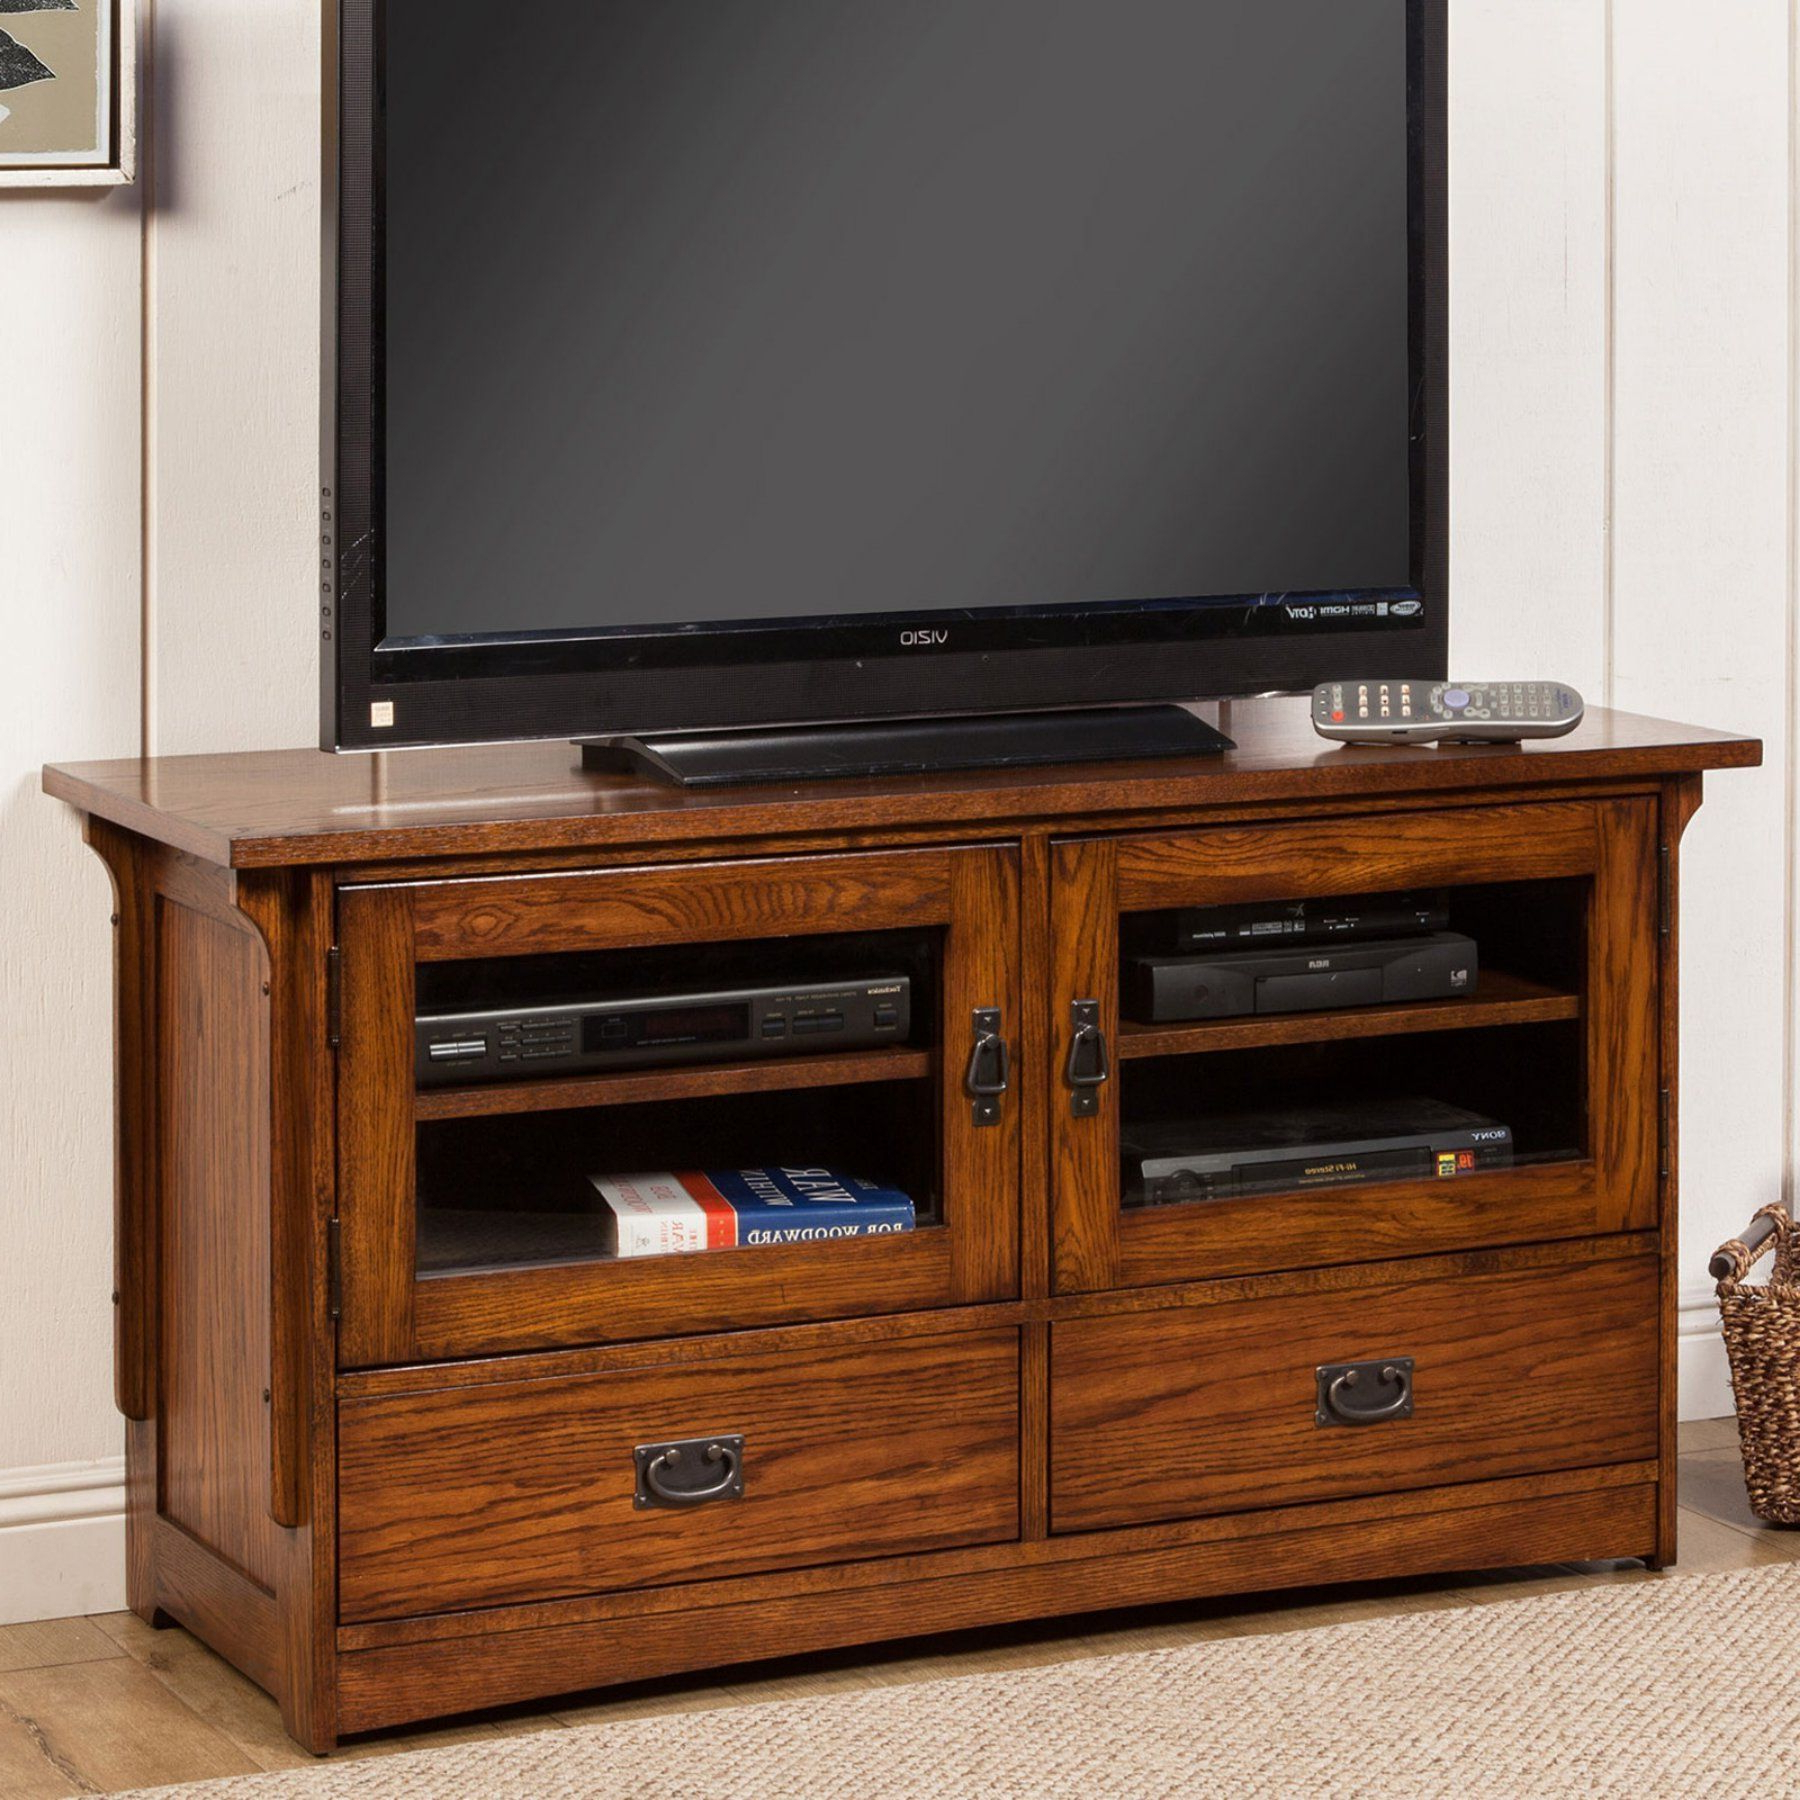 Medium Oak Tv Stands Flat Screen Furniture Of America Daimon Pertaining To Trendy Industrial Corner Tv Stands (View 14 of 20)